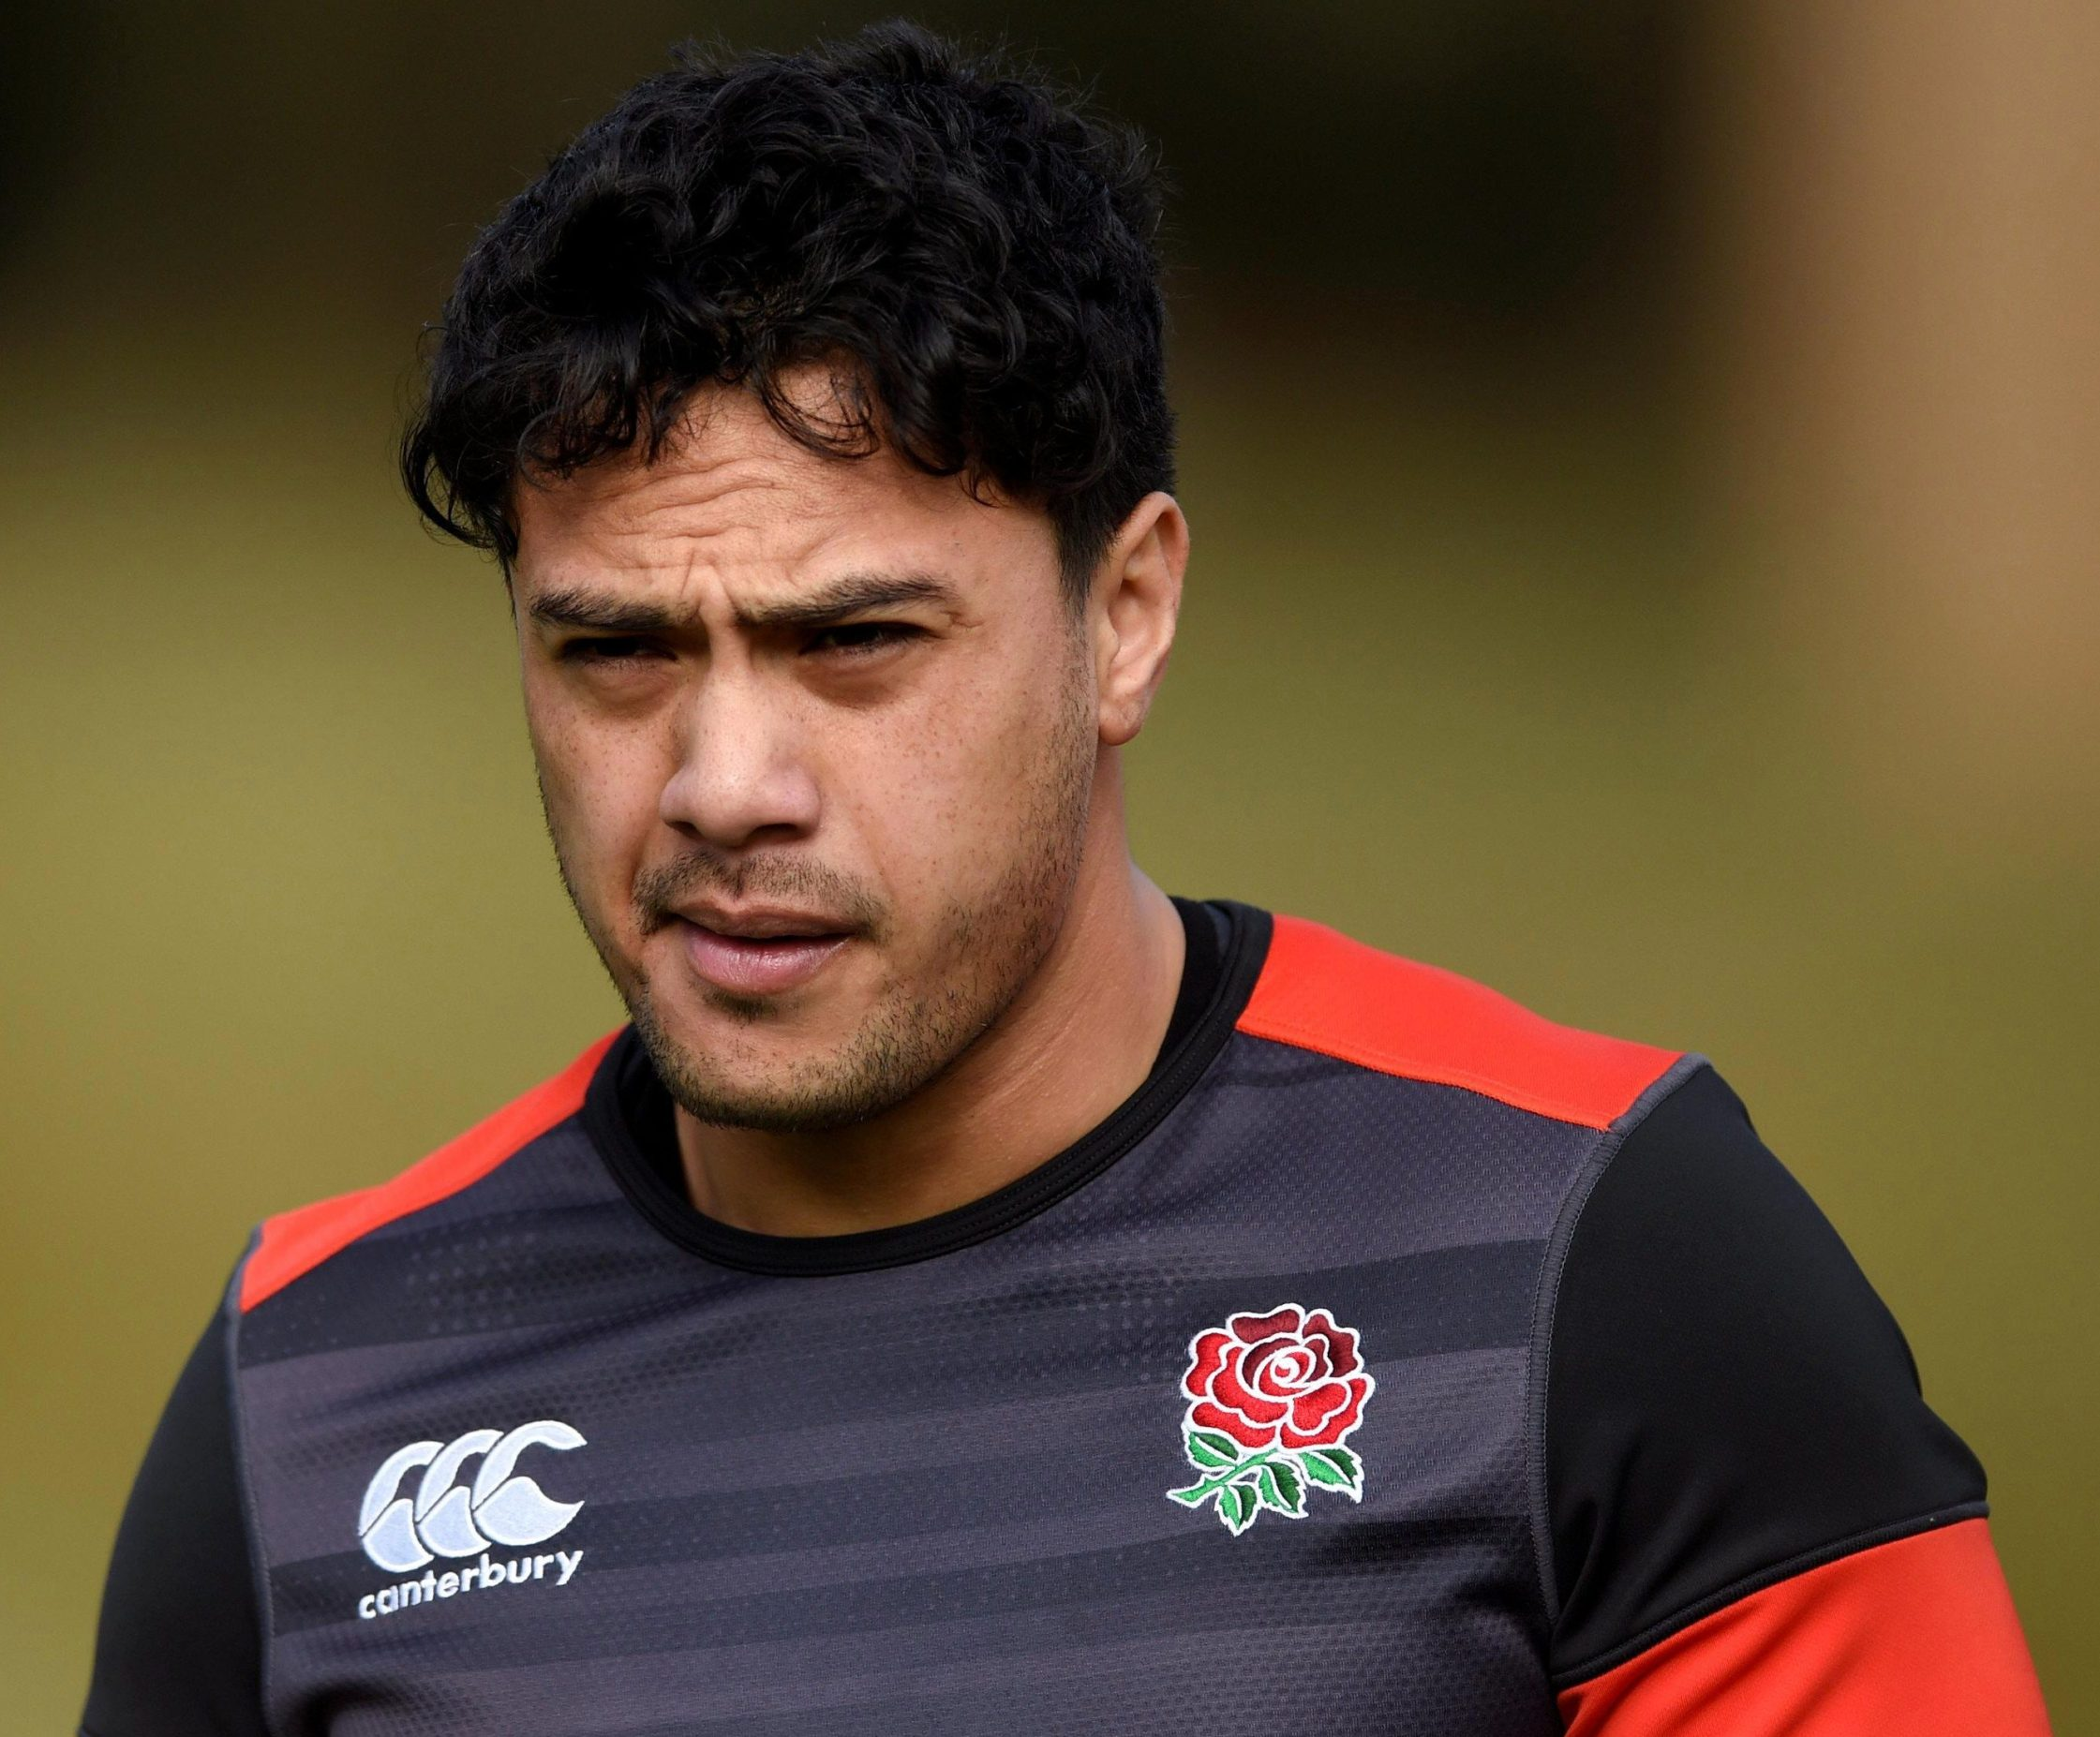 The England career of winger Denny Solomona now seems in huge doubt